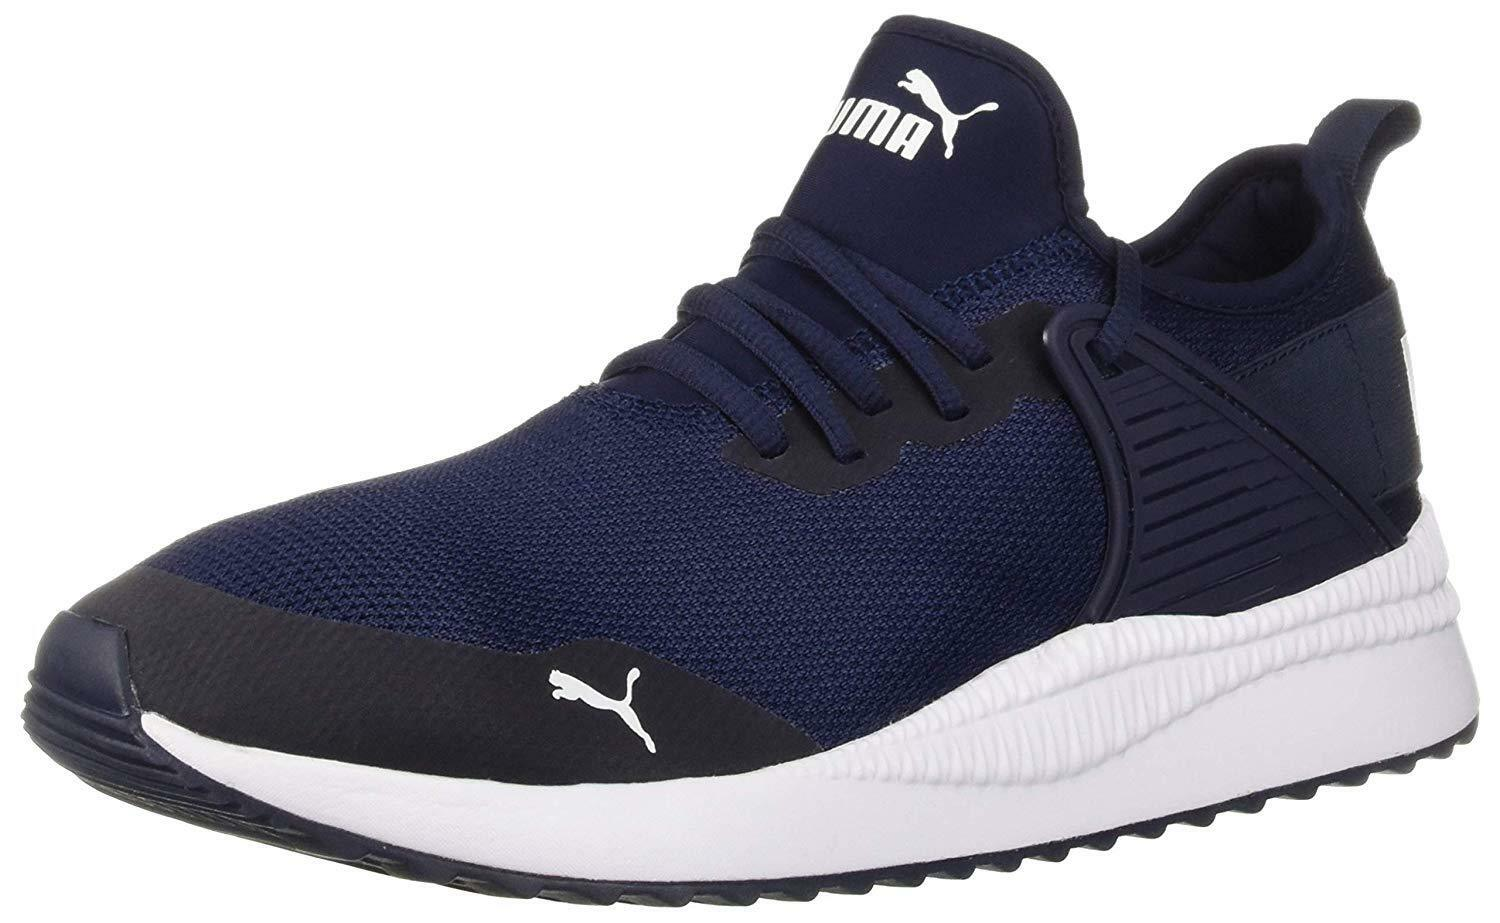 PUMA Men's Pacer Next Cage Multiknit Sneaker